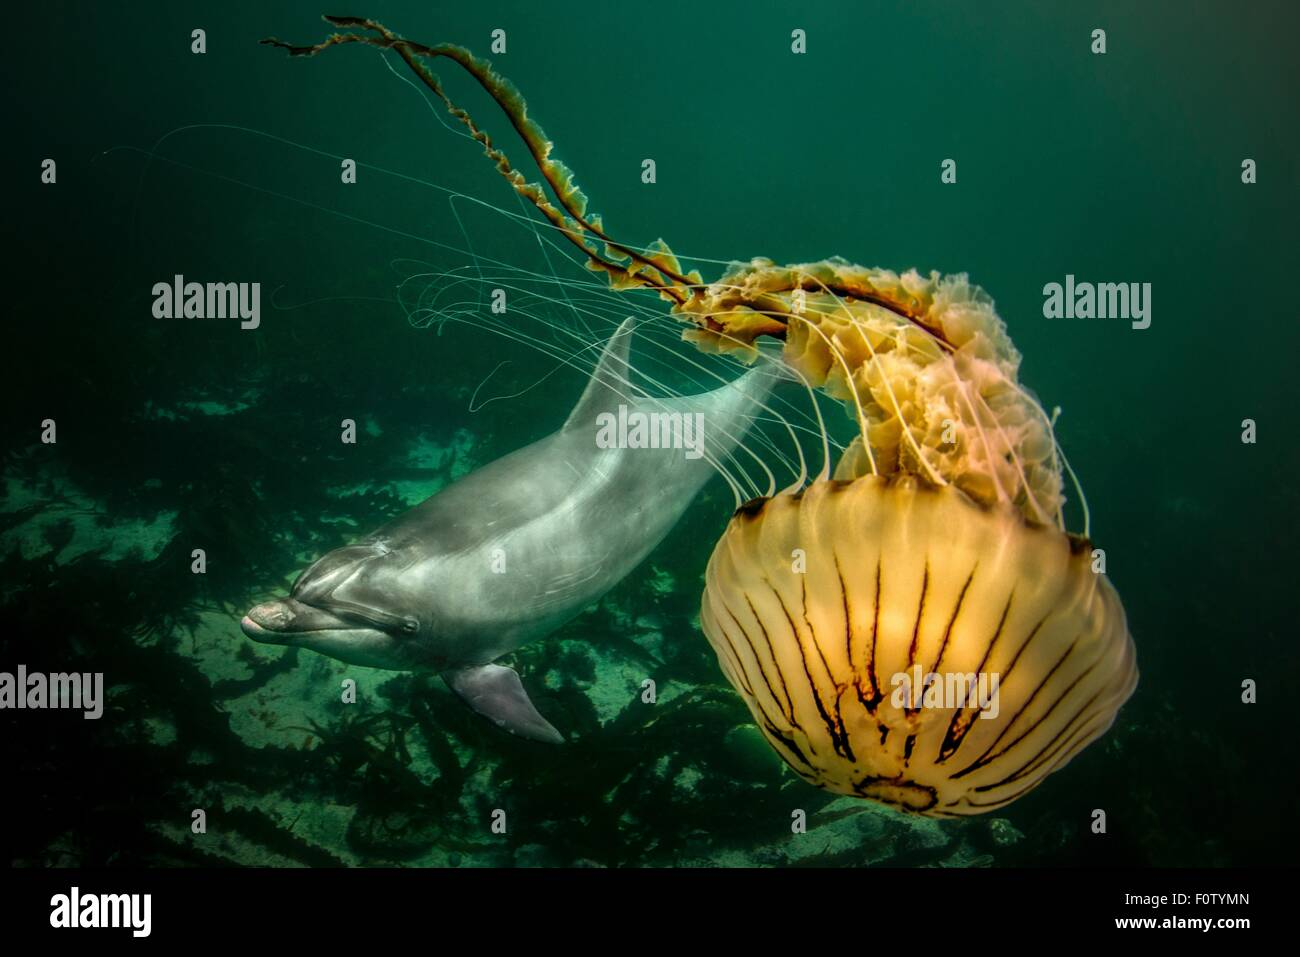 Bottlenose dolphin and compass jellyfish - Stock Image